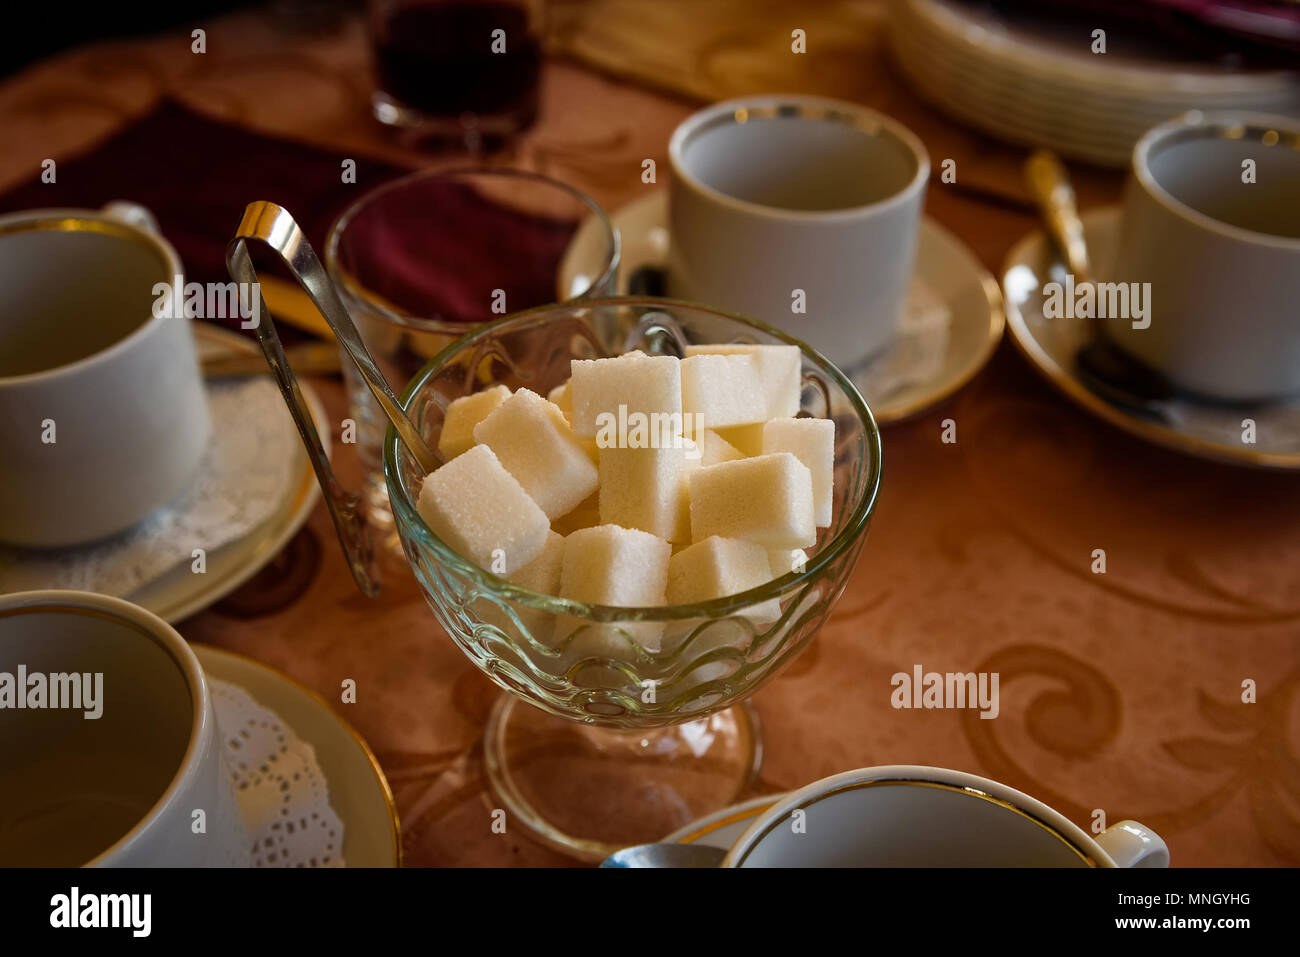 Close up vase with lumps of white sugar on table with cups. Tee time concept - Stock Image